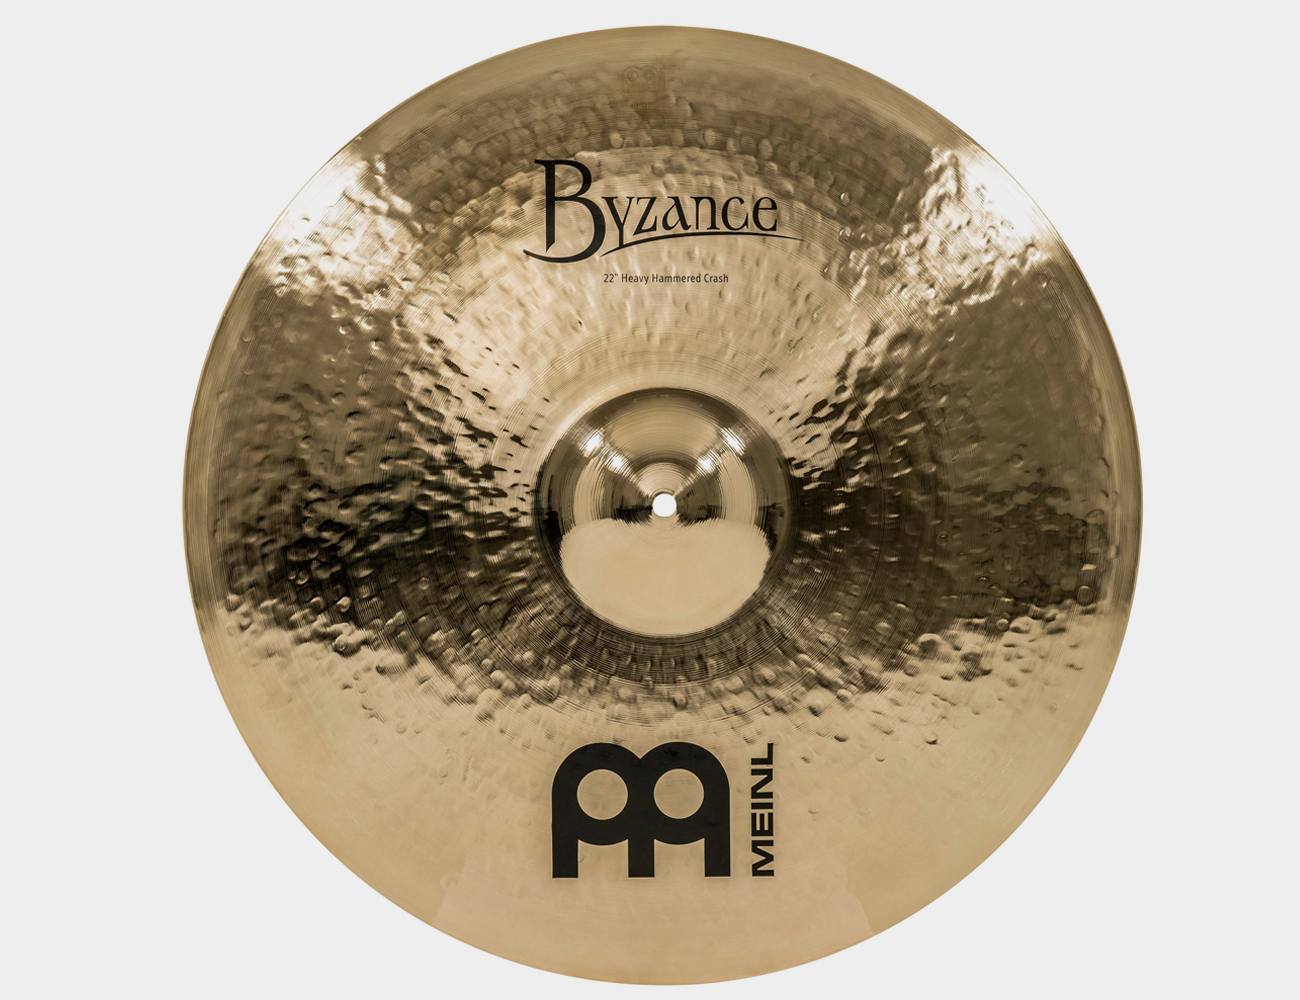 Meinl_Byzance_HeavyHammered_Crash_22